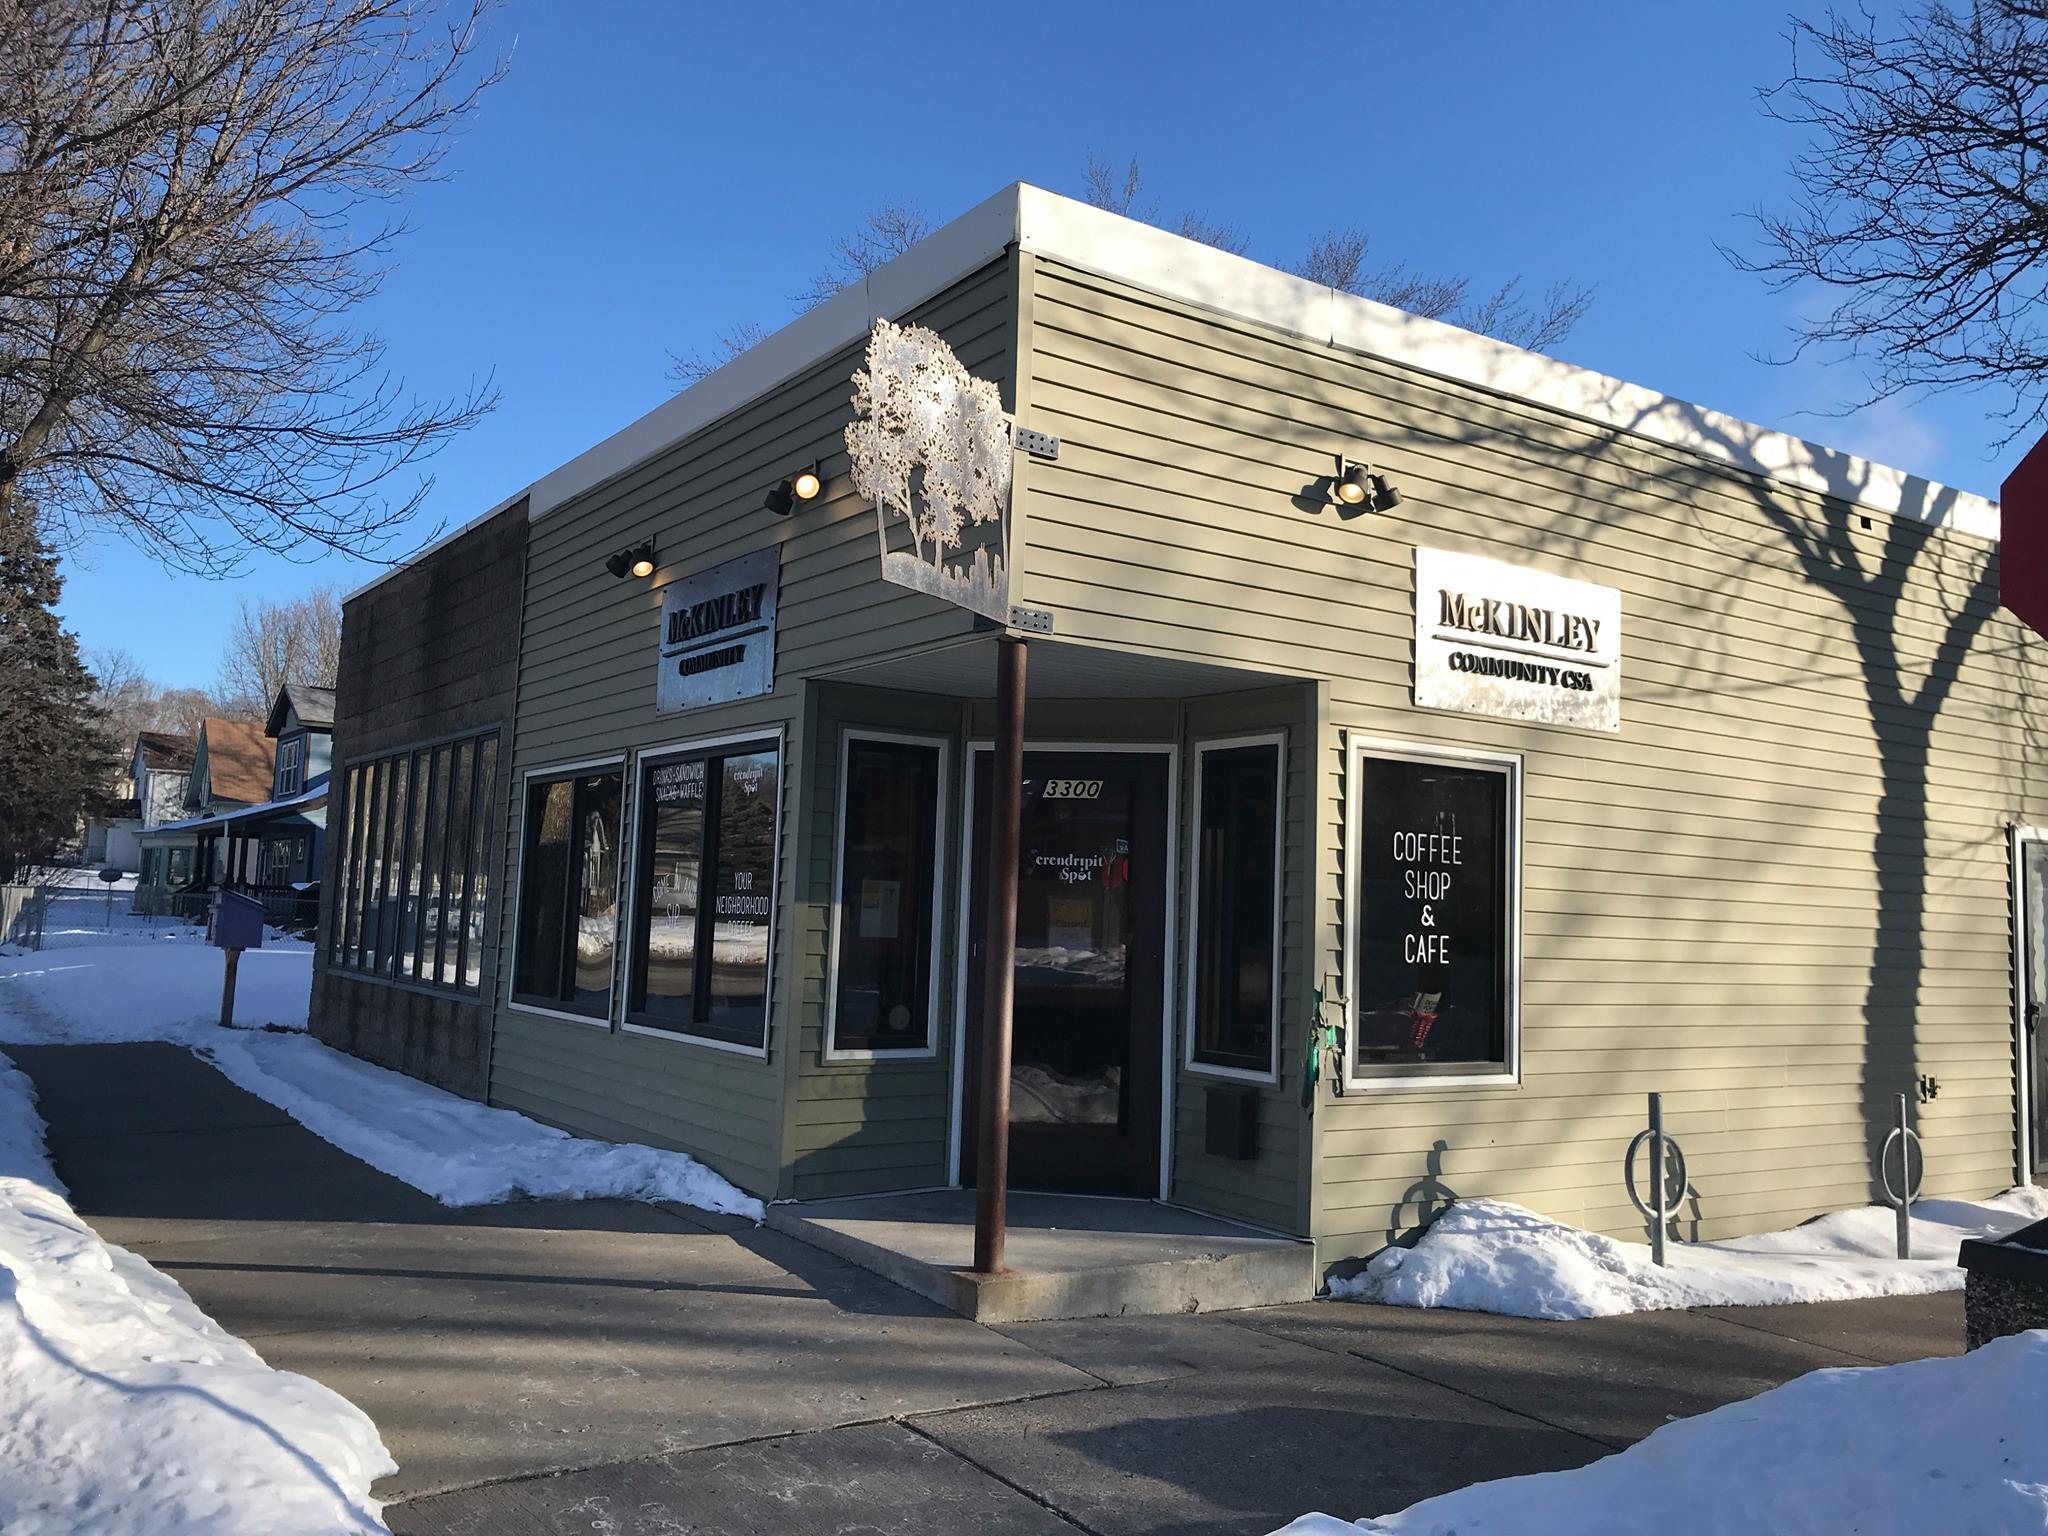 In late March, Serendripity Spot, a McKinley neighborhood coffee shop abruptly announced that it would no longer carry a business license.  Photo courtesy of the McKinley Community Facebook Page